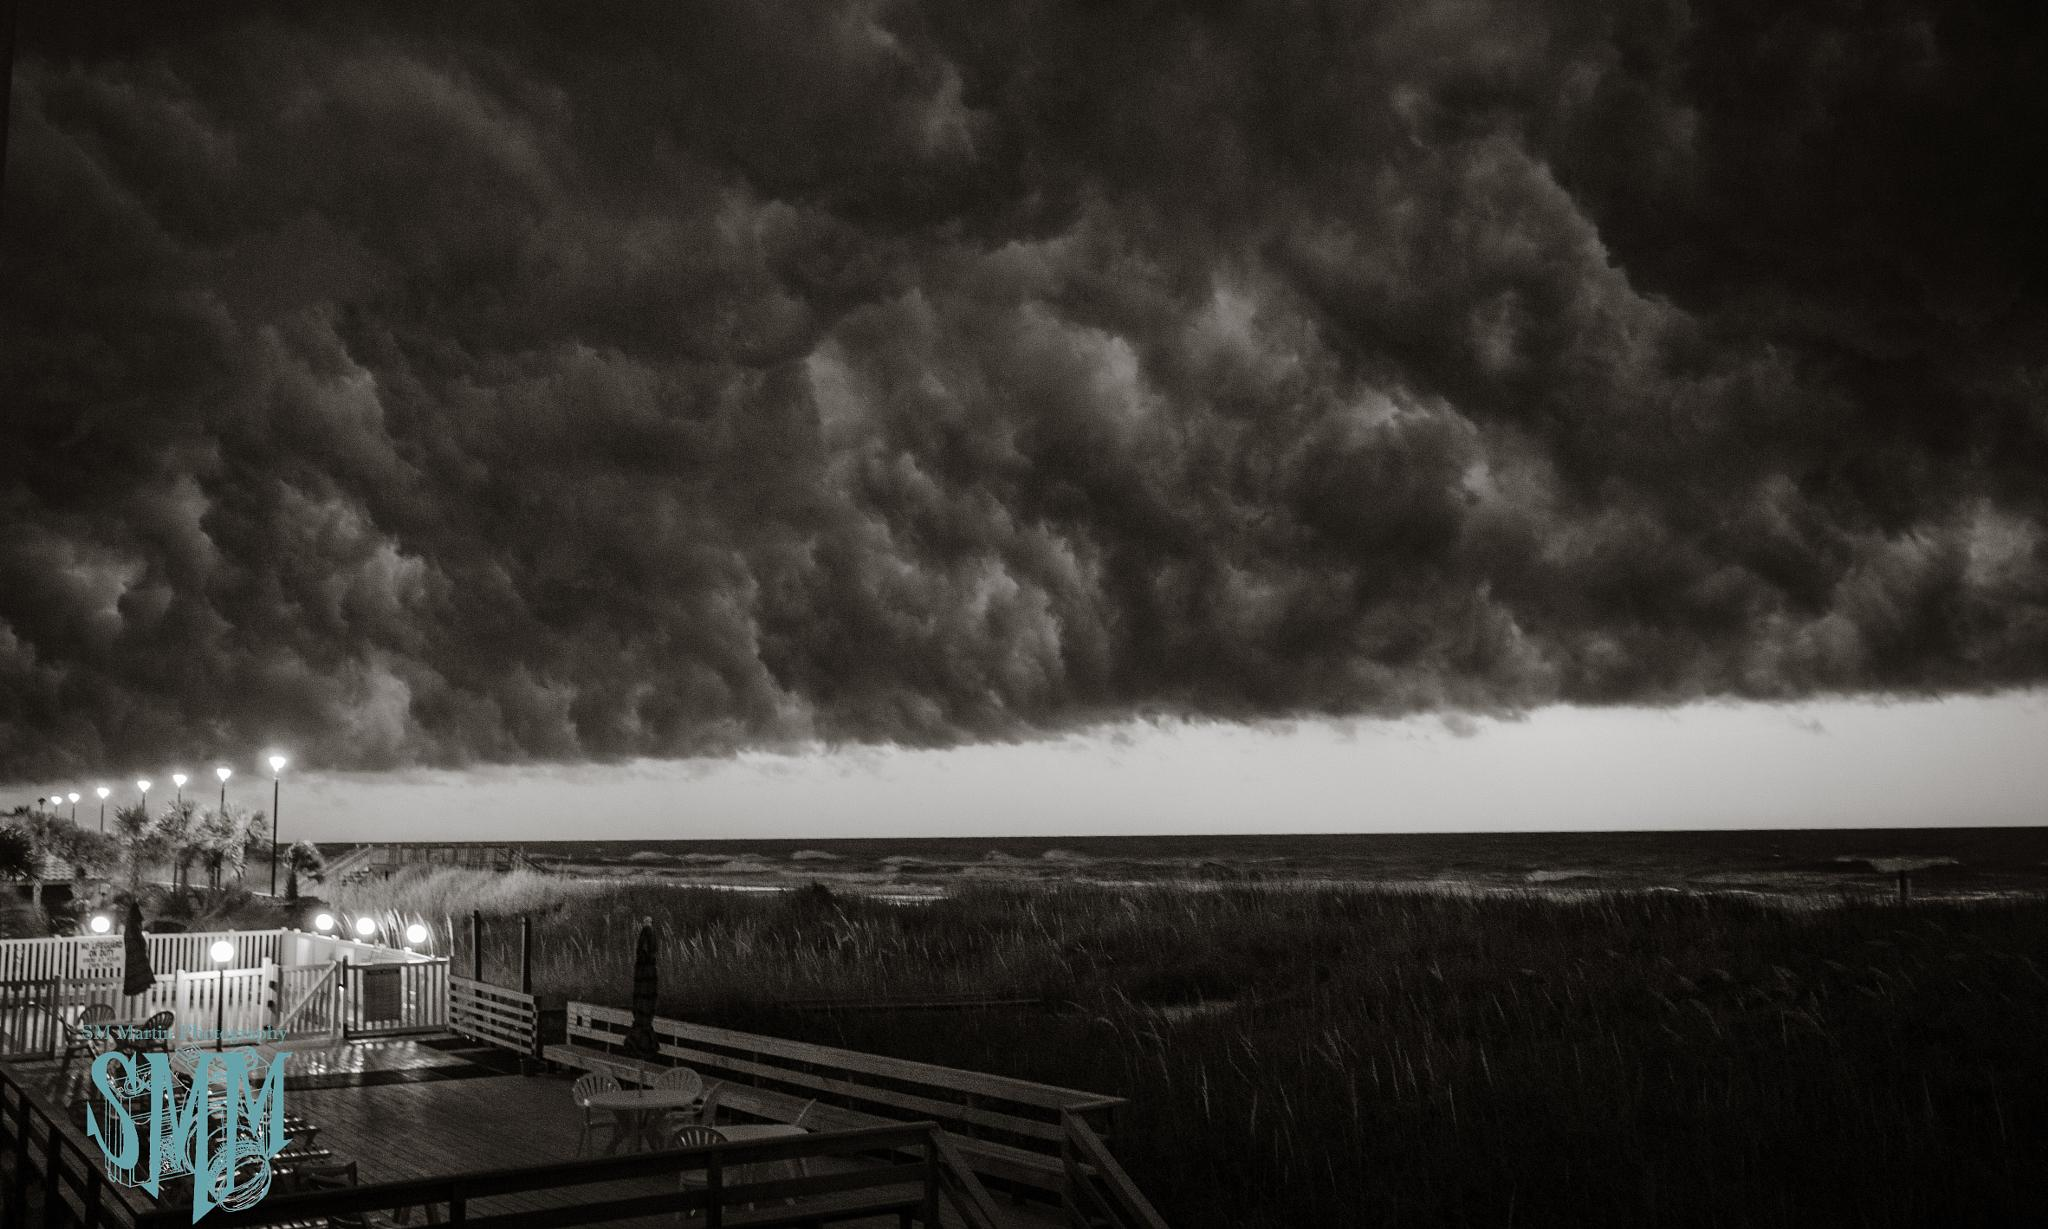 Storm by stacey.martin.9250